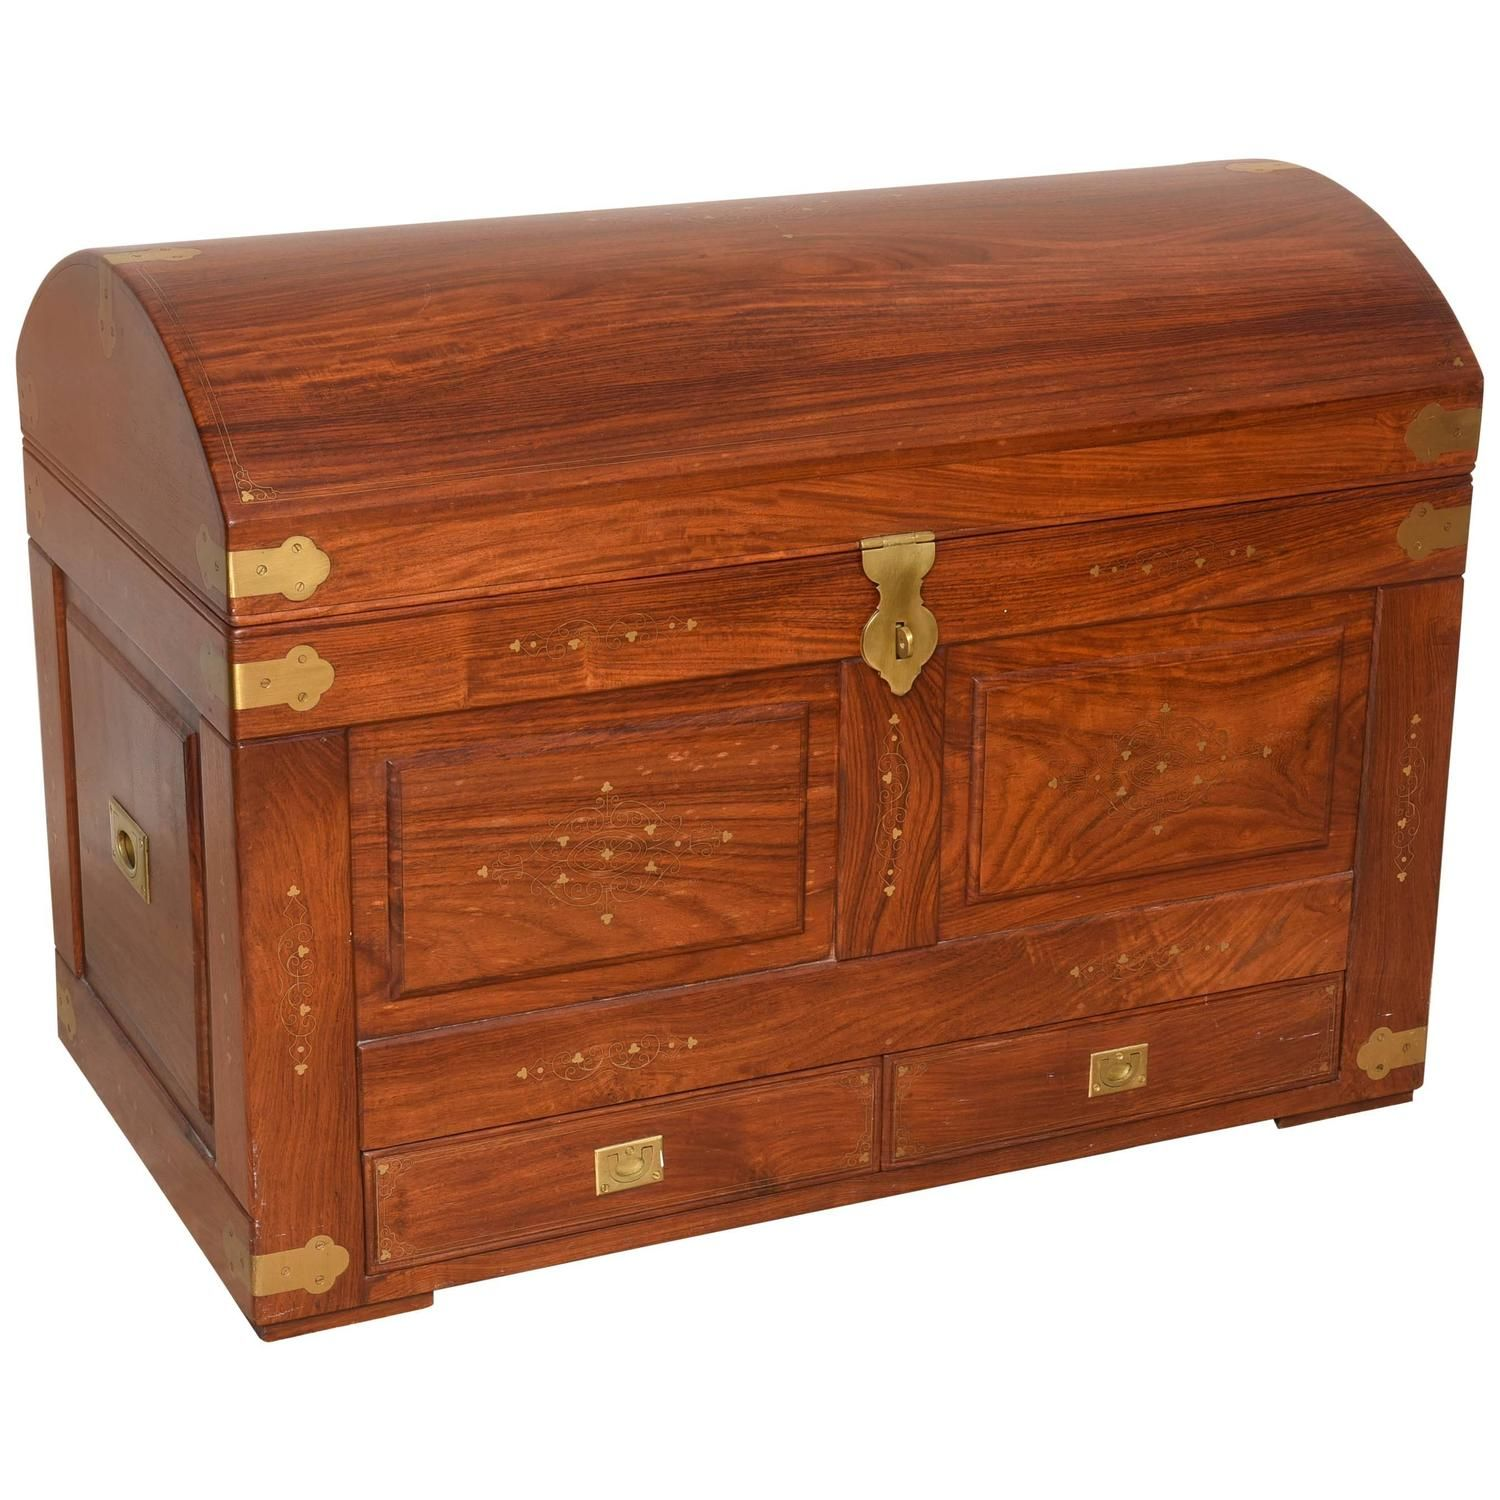 Anglo-Indian Domed Camel-Back Trunk in Teak Wood with ...